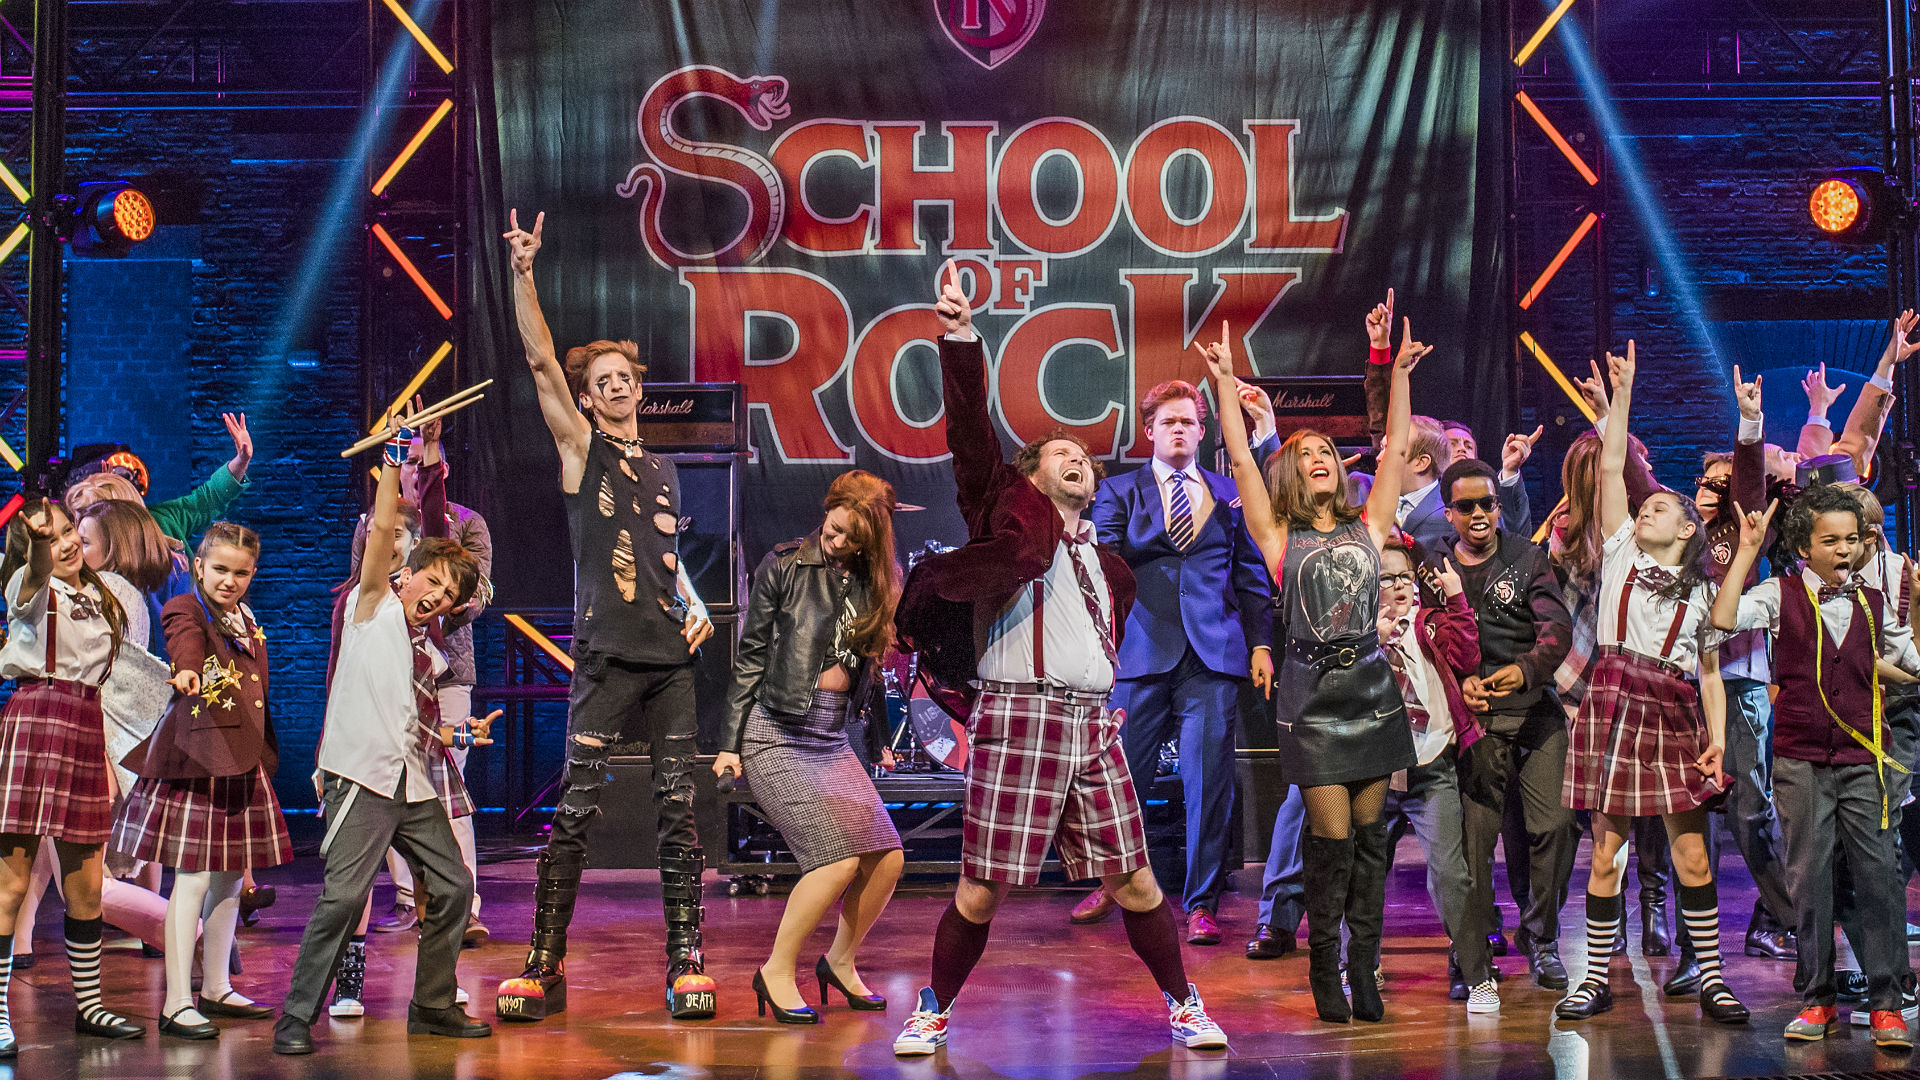 School of Rock at the New London Theatre. Credit: Tristram Kenton. Image courtesy of Premier PR.